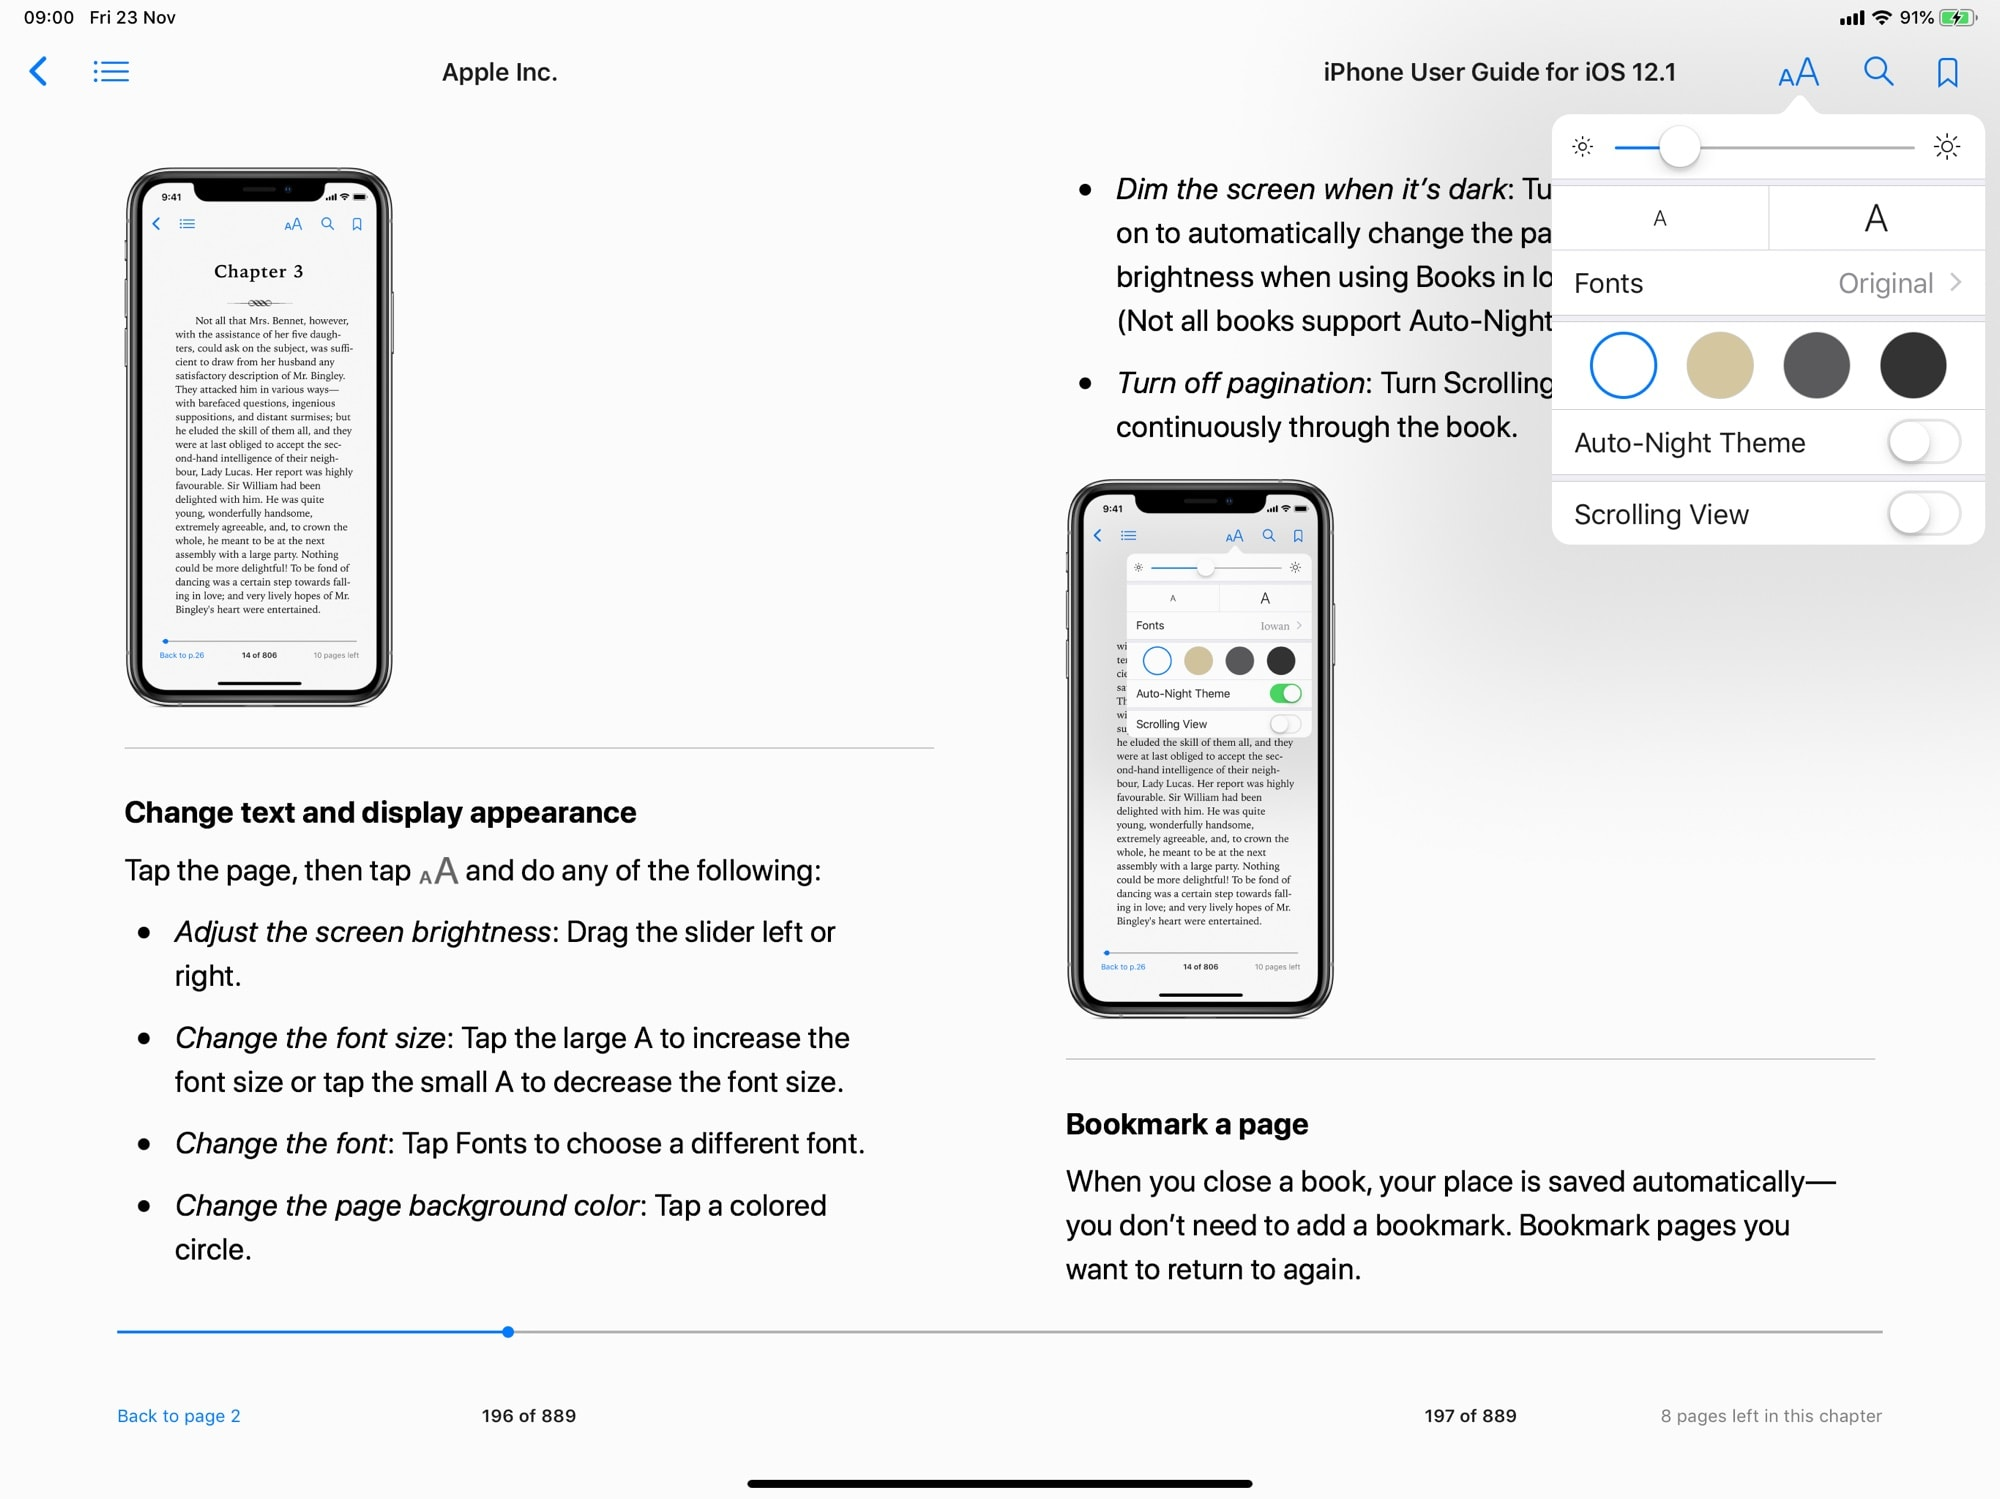 Thankfully you can adjust the in-book view from dark to light in the Apple Books app.